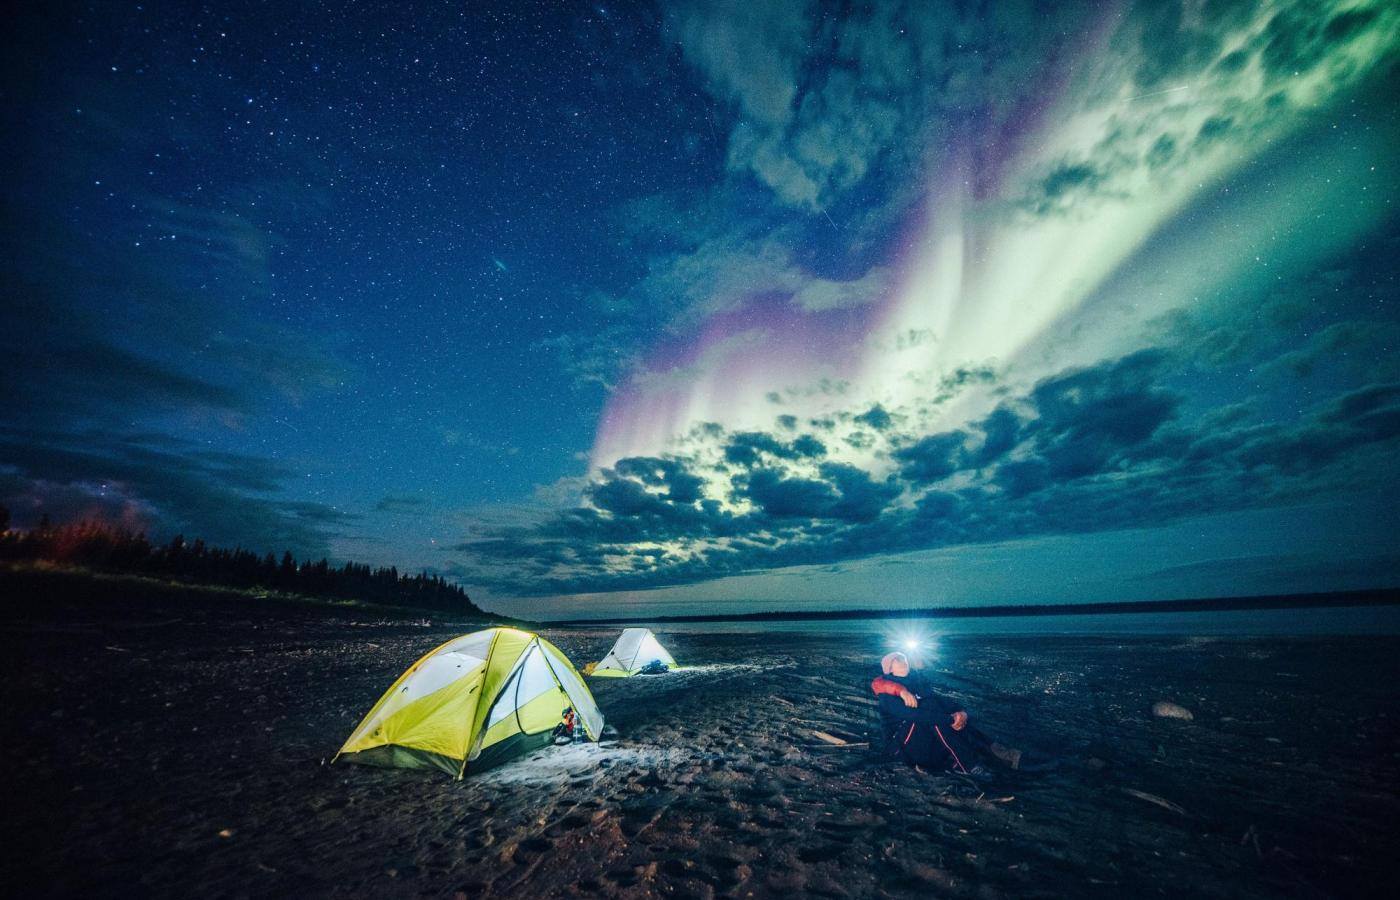 a person sits on the beach next to a tent watching the northern lights overhead